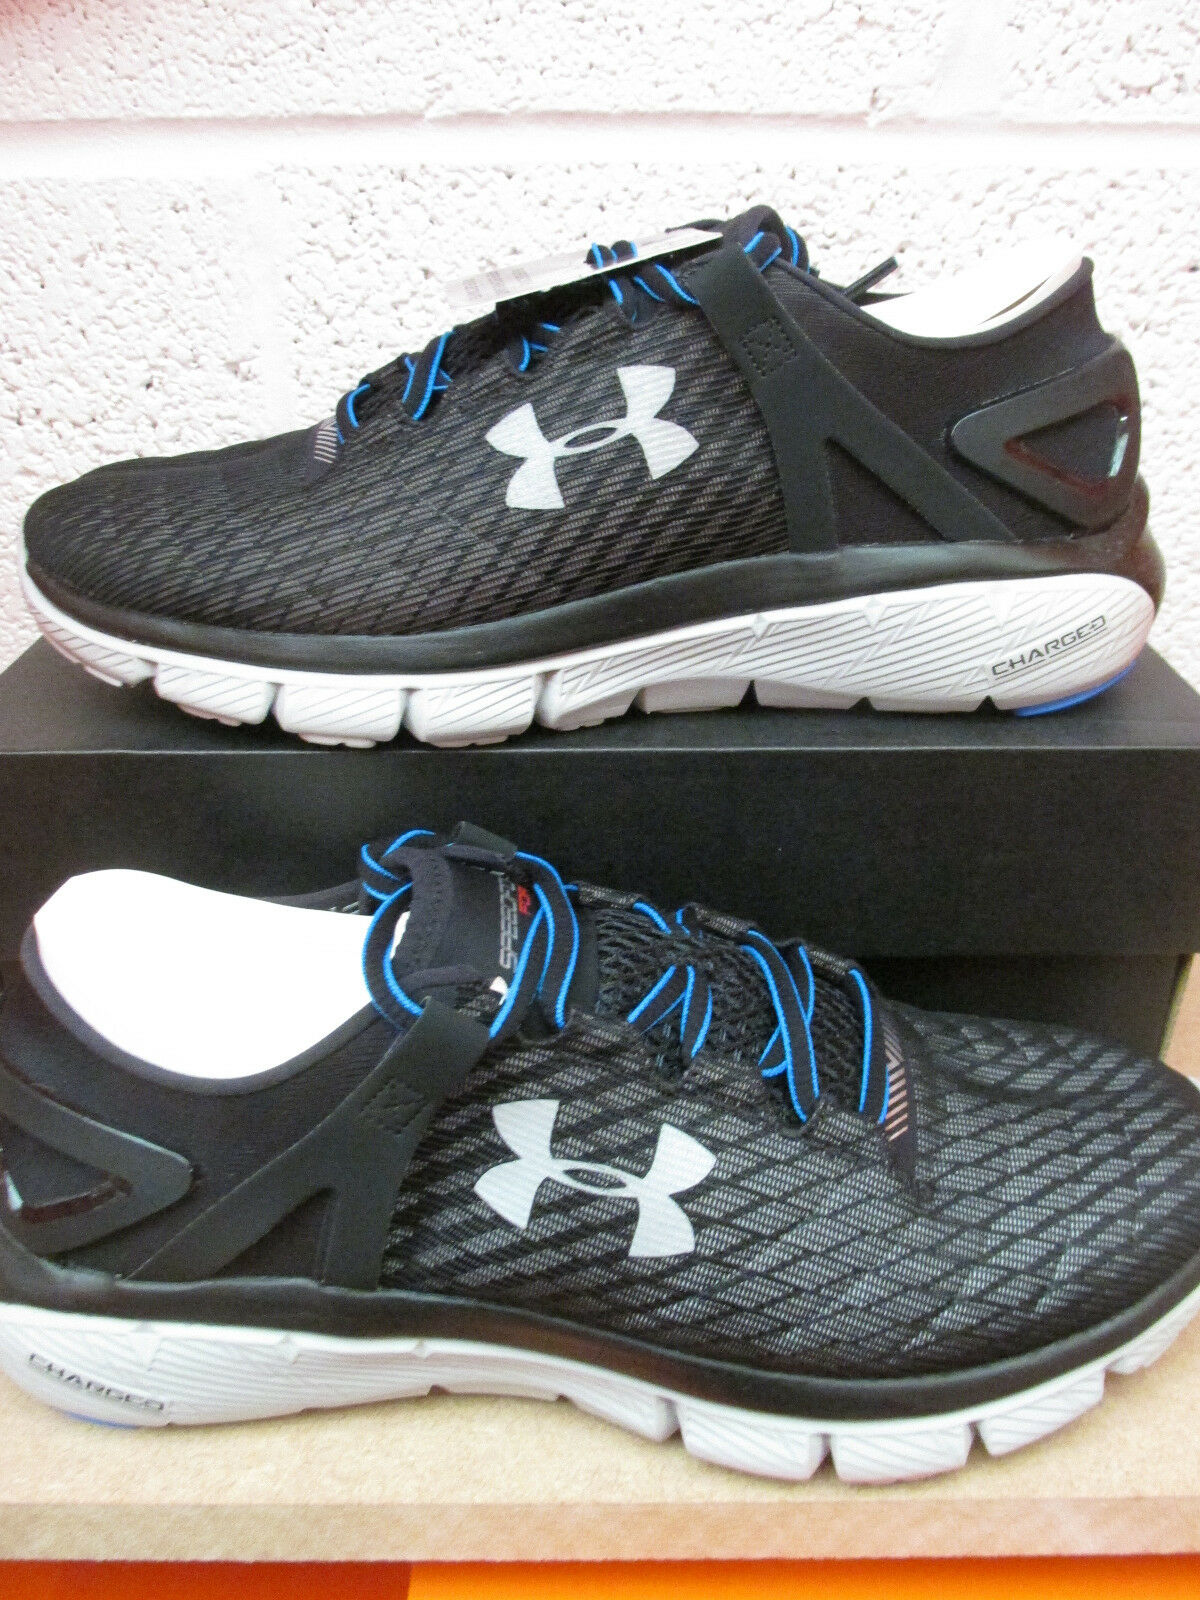 Under Armour UA Speedform Fortis Night Running Trainers 1265571 001 Sneakers